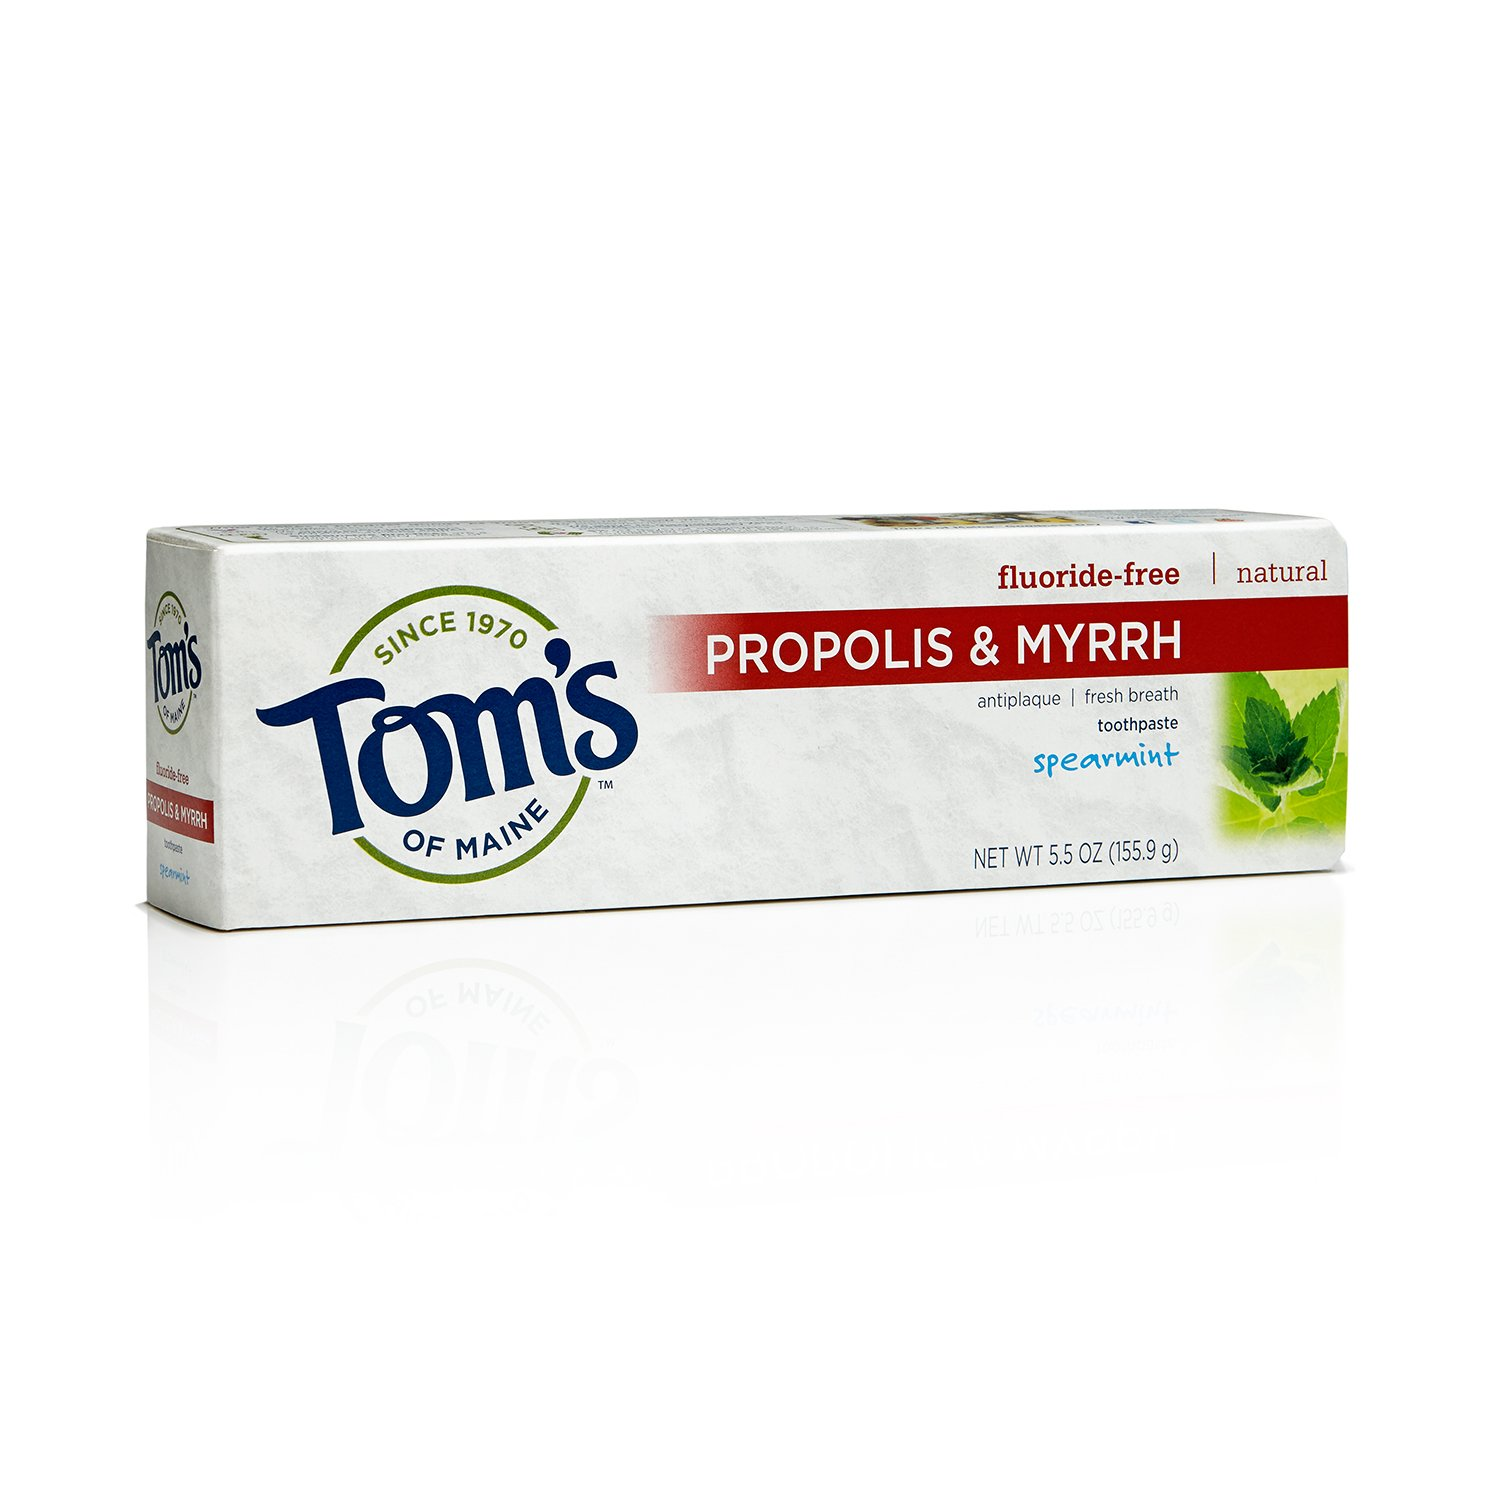 Tom's of Maine 683085 Fluoride-Free Natural Toothpaste with Propolis and Myrrh, Spearmint, 5.5 Ounce, 24 Count